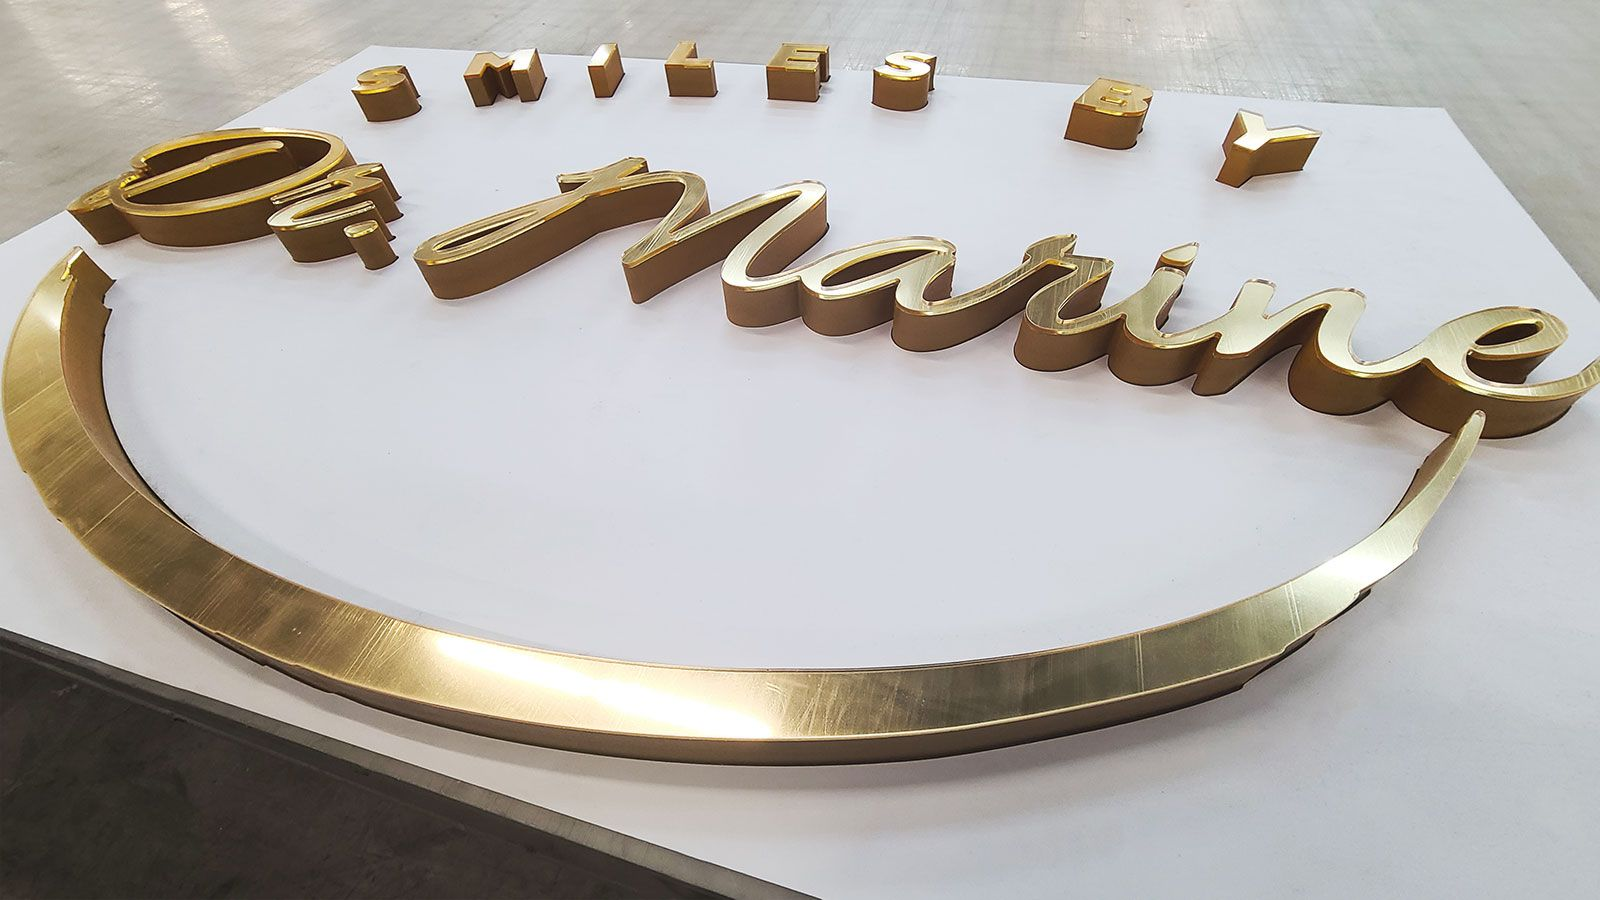 acrylic and pvc 3d letters